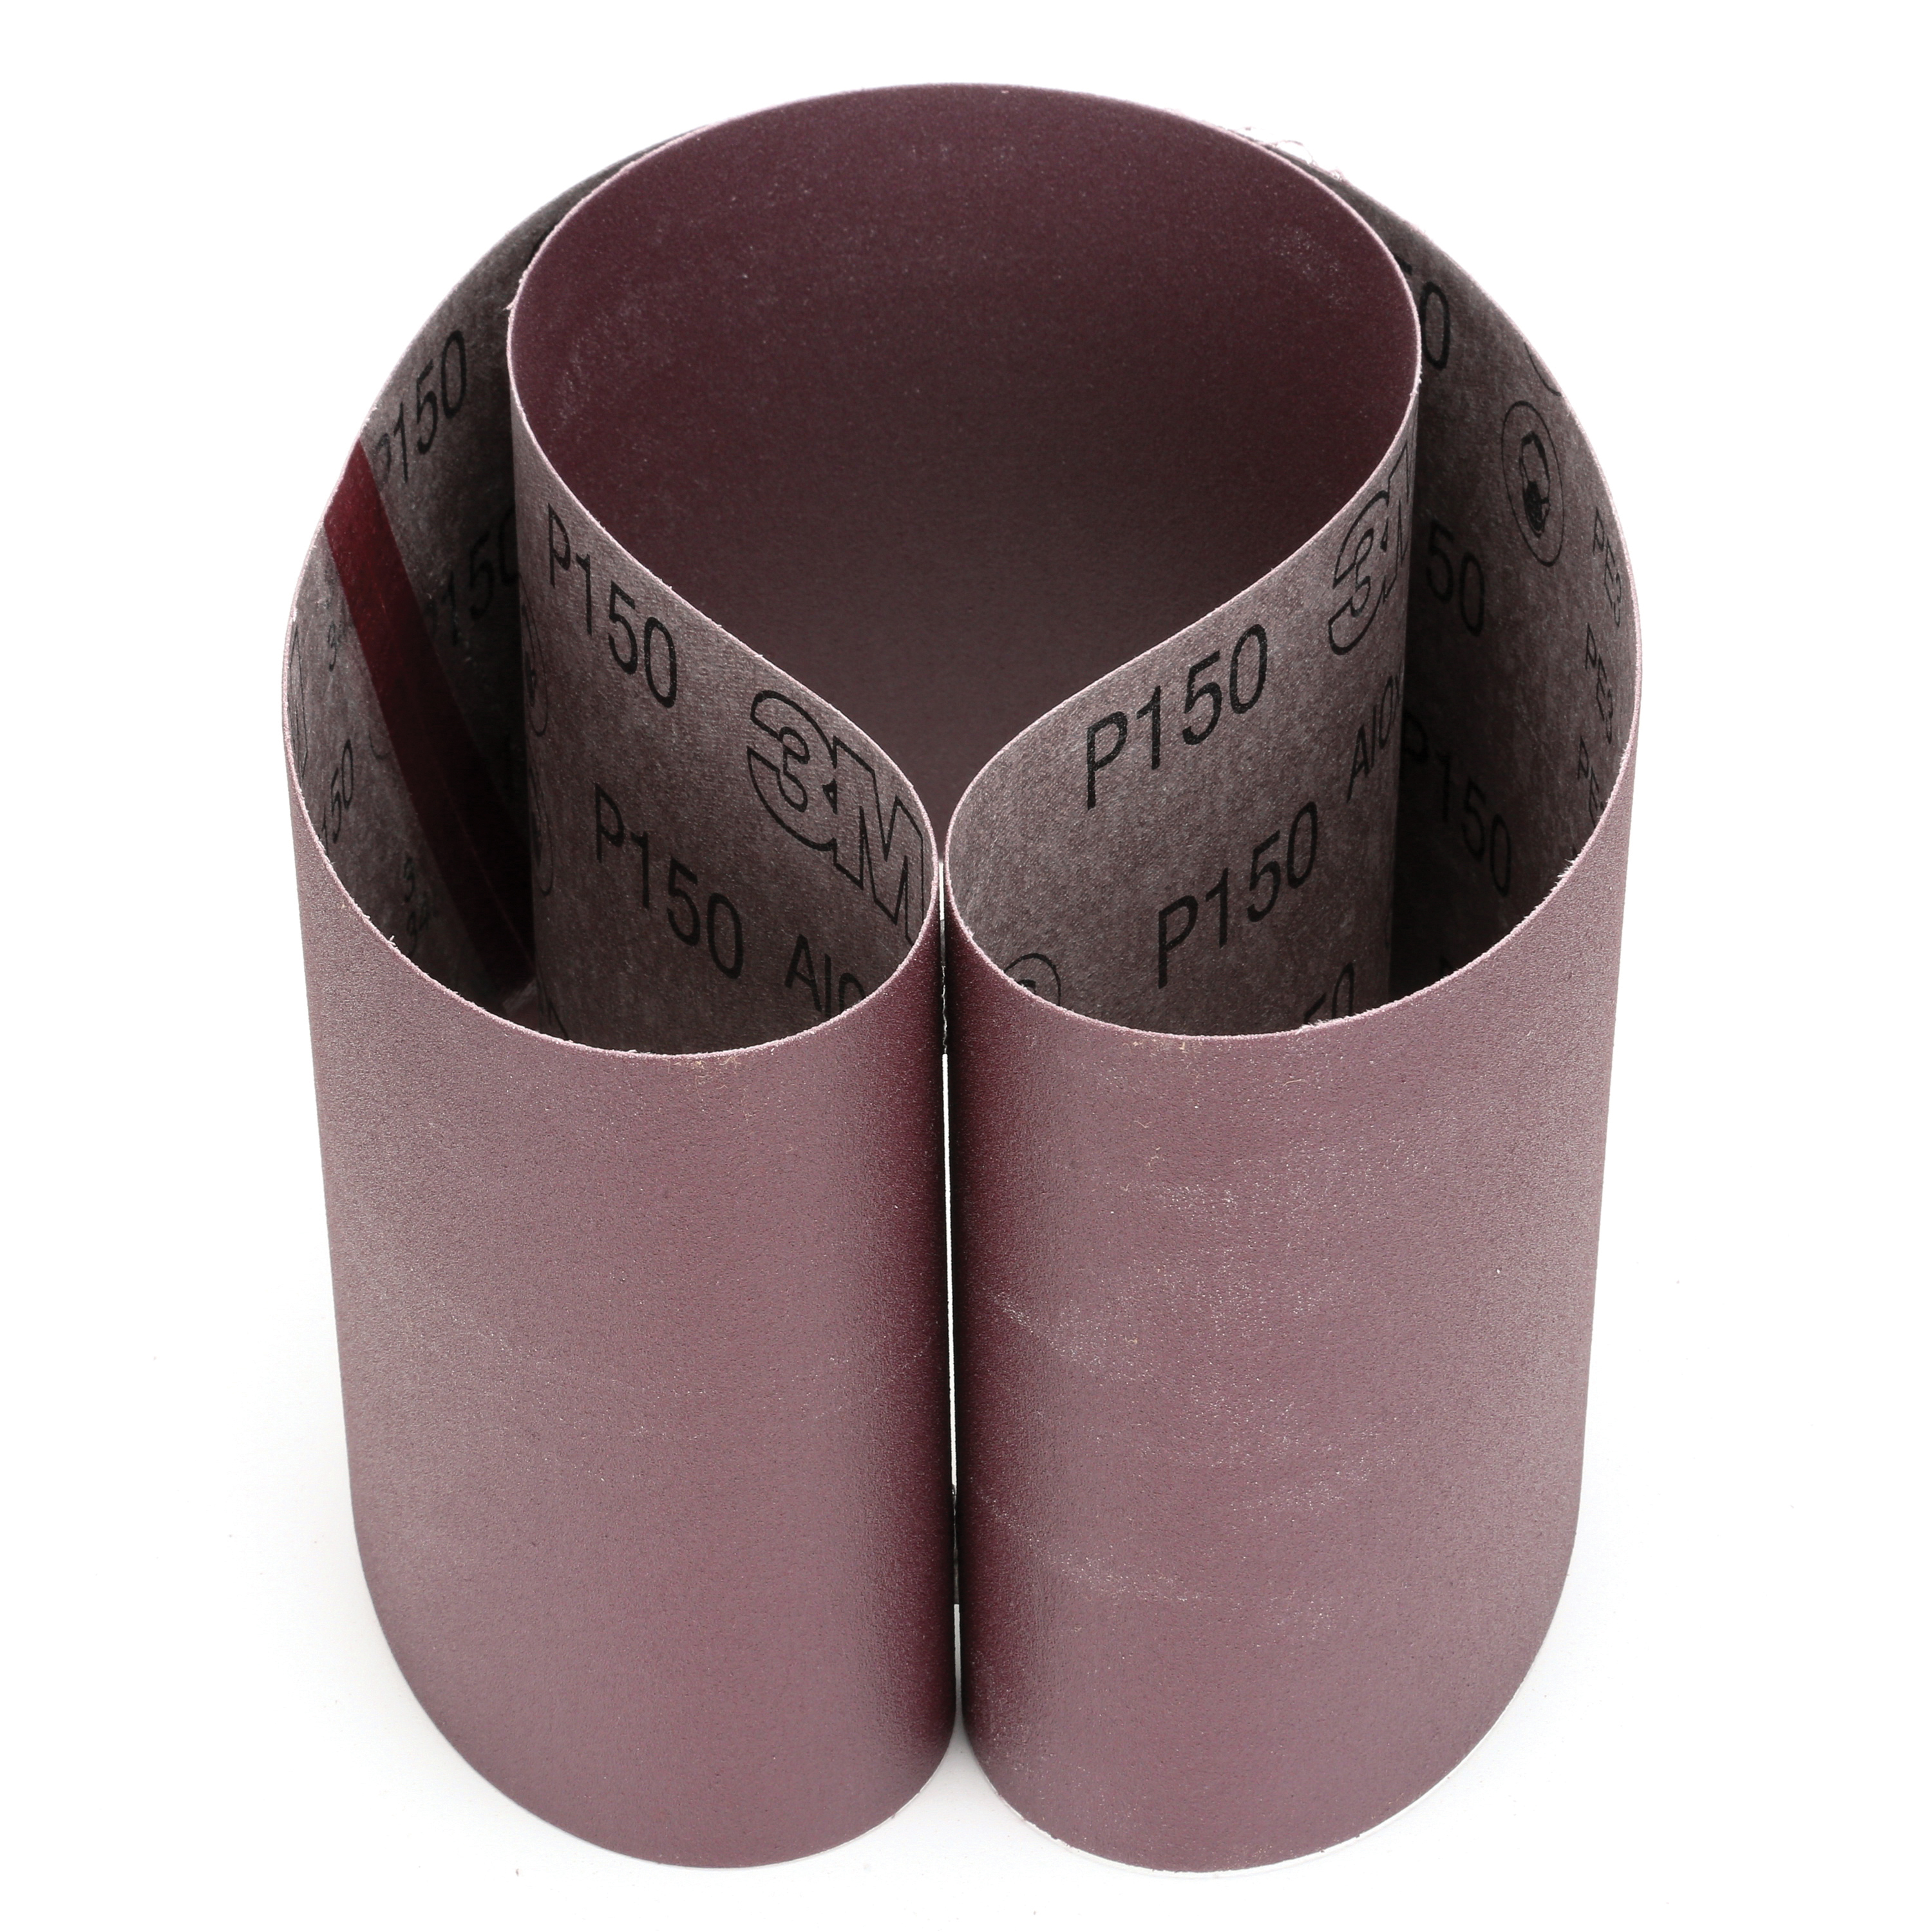 3M™ 051144-26517 Narrow Coated Abrasive Belt, 6 in W x 48 in L, P150 Grit, Very Fine Grade, Aluminum Oxide Abrasive, Cloth Backing